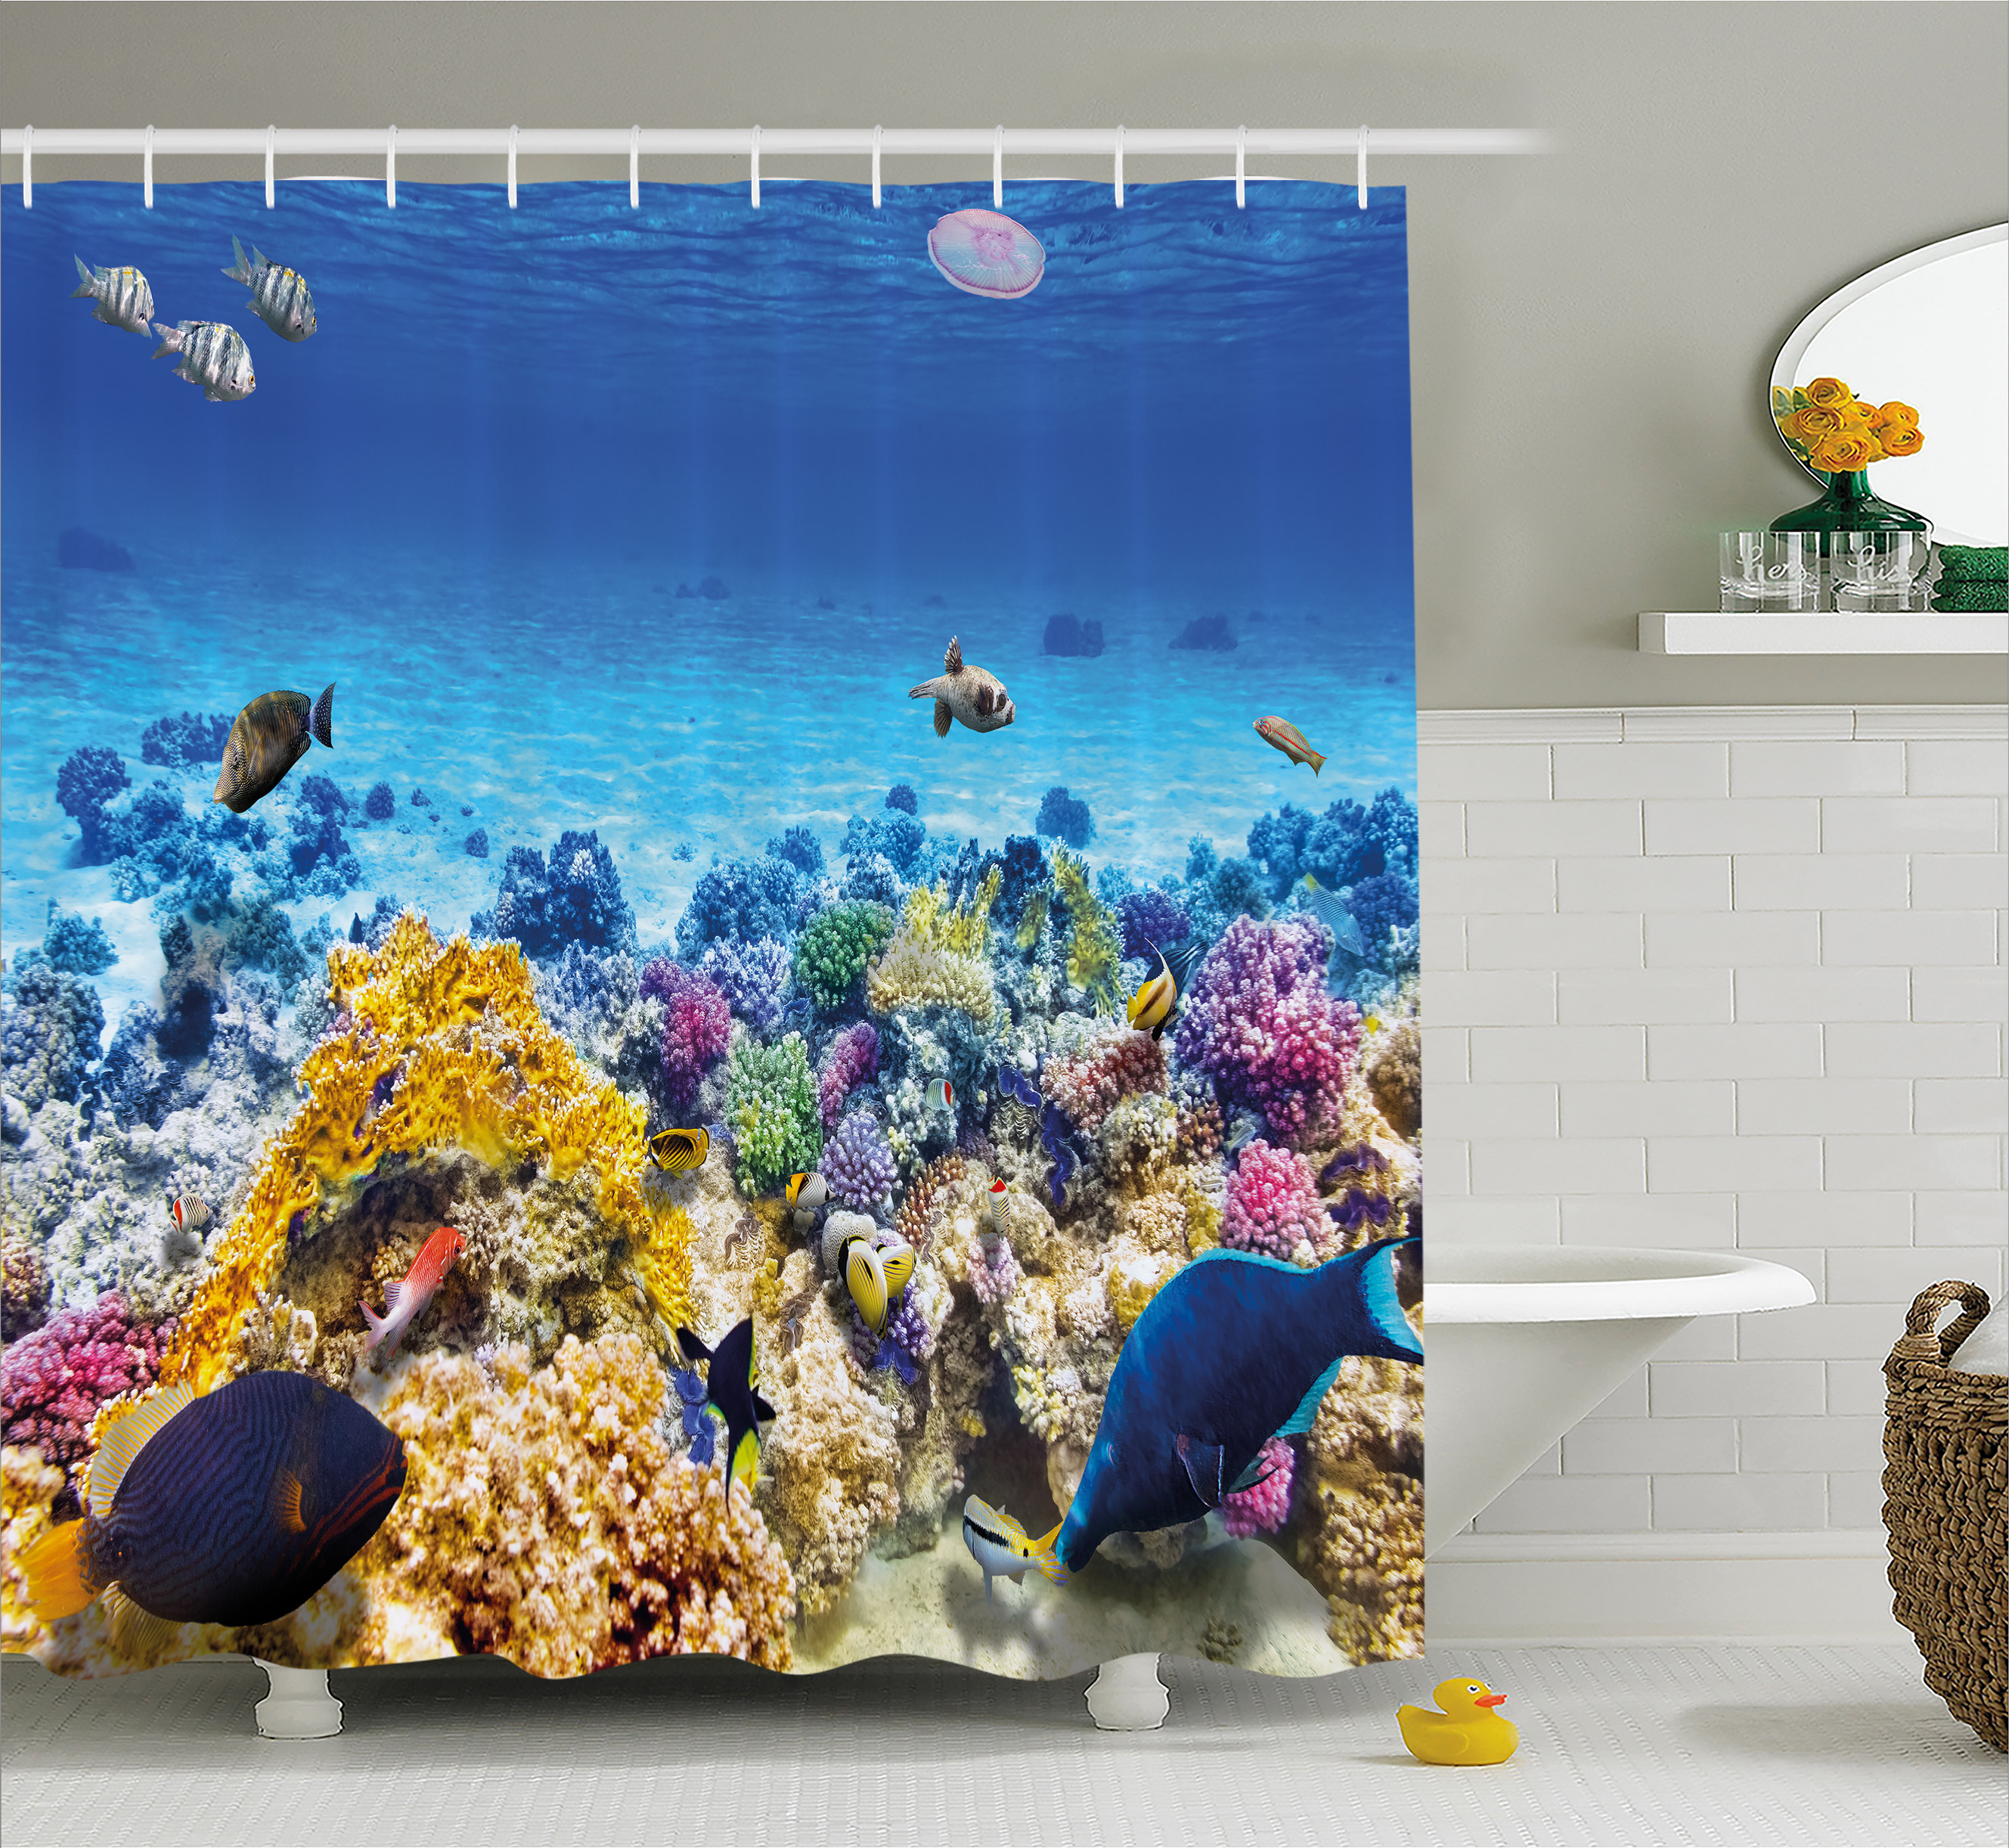 Ocean Decor Shower Curtain, Underwater Sea World Scene with Goldfish Starfish Jellyfish Depth Diving Concept, Fabric Bathroom Set with Hooks, 69W X 75L Inches Long, Turquoise, by Ambesonne